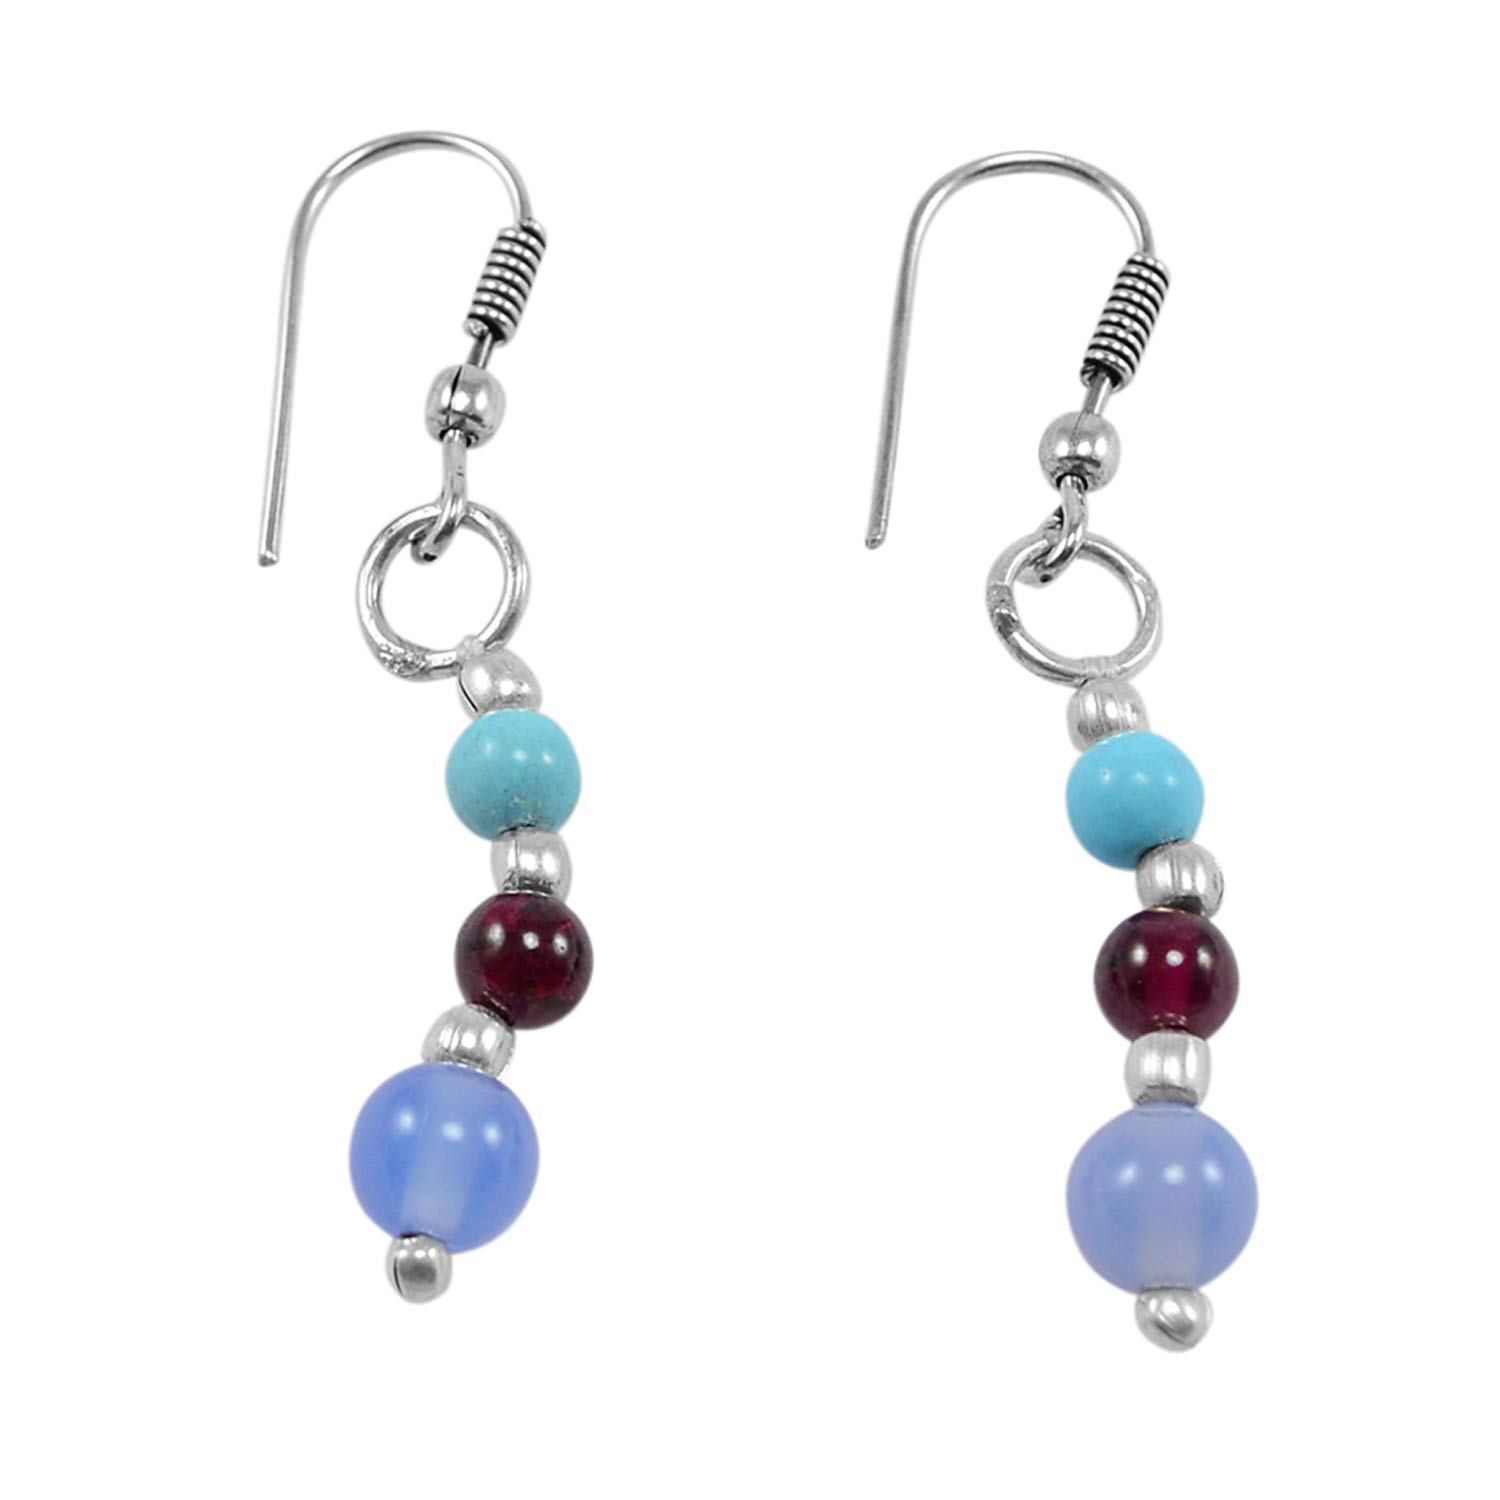 Turquoise /& Rhodolite Quartz 925 Silver Plated Dangle Earring PG-130713 Saamarth Impex Blue Chalcedony